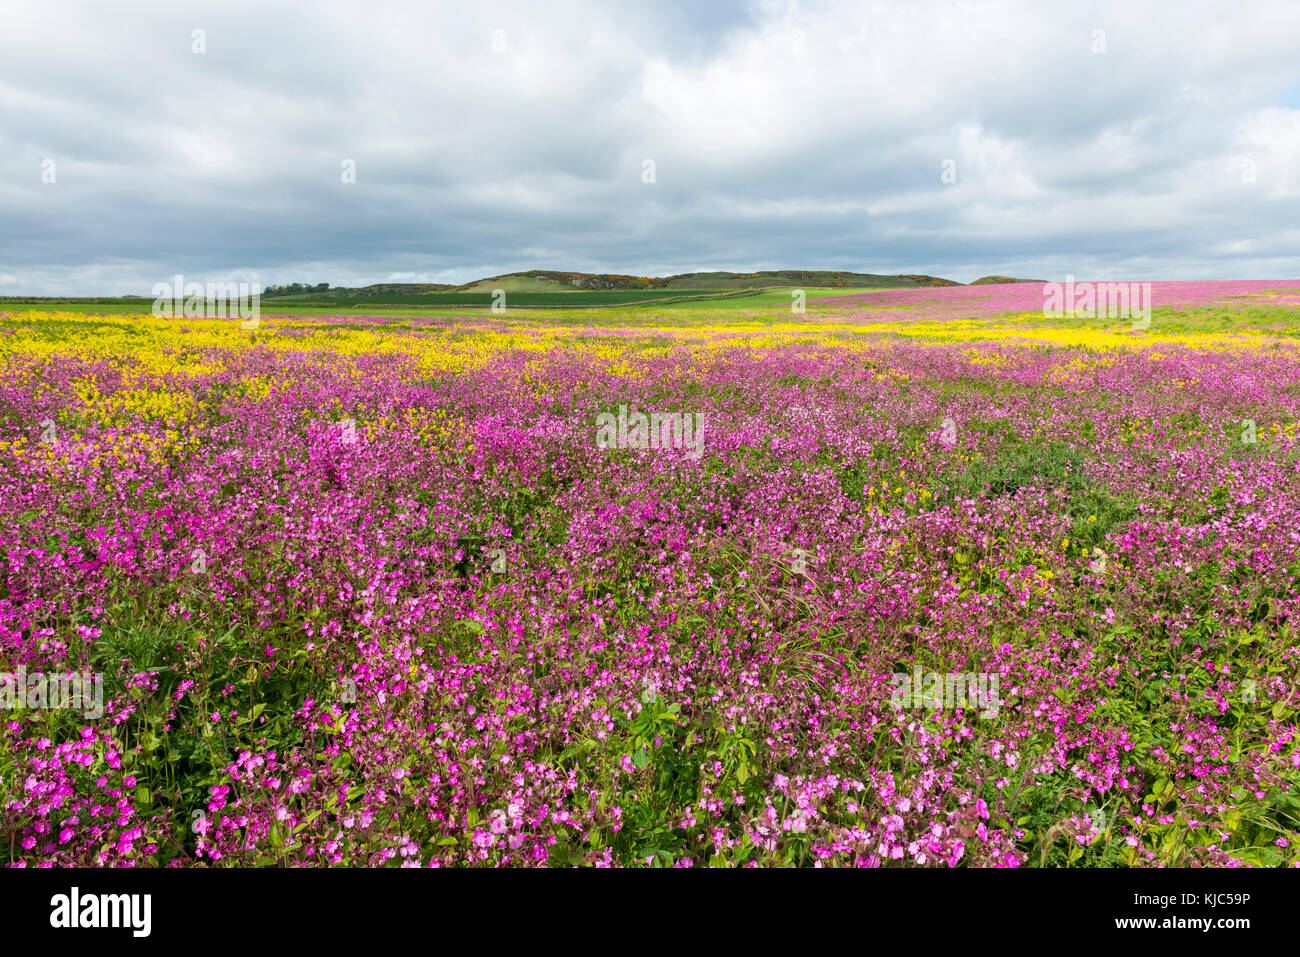 Scenic of field with blooming pink flowers and canola on a cloudy day in Bamburgh in Northumberland, England, United - Stock Image